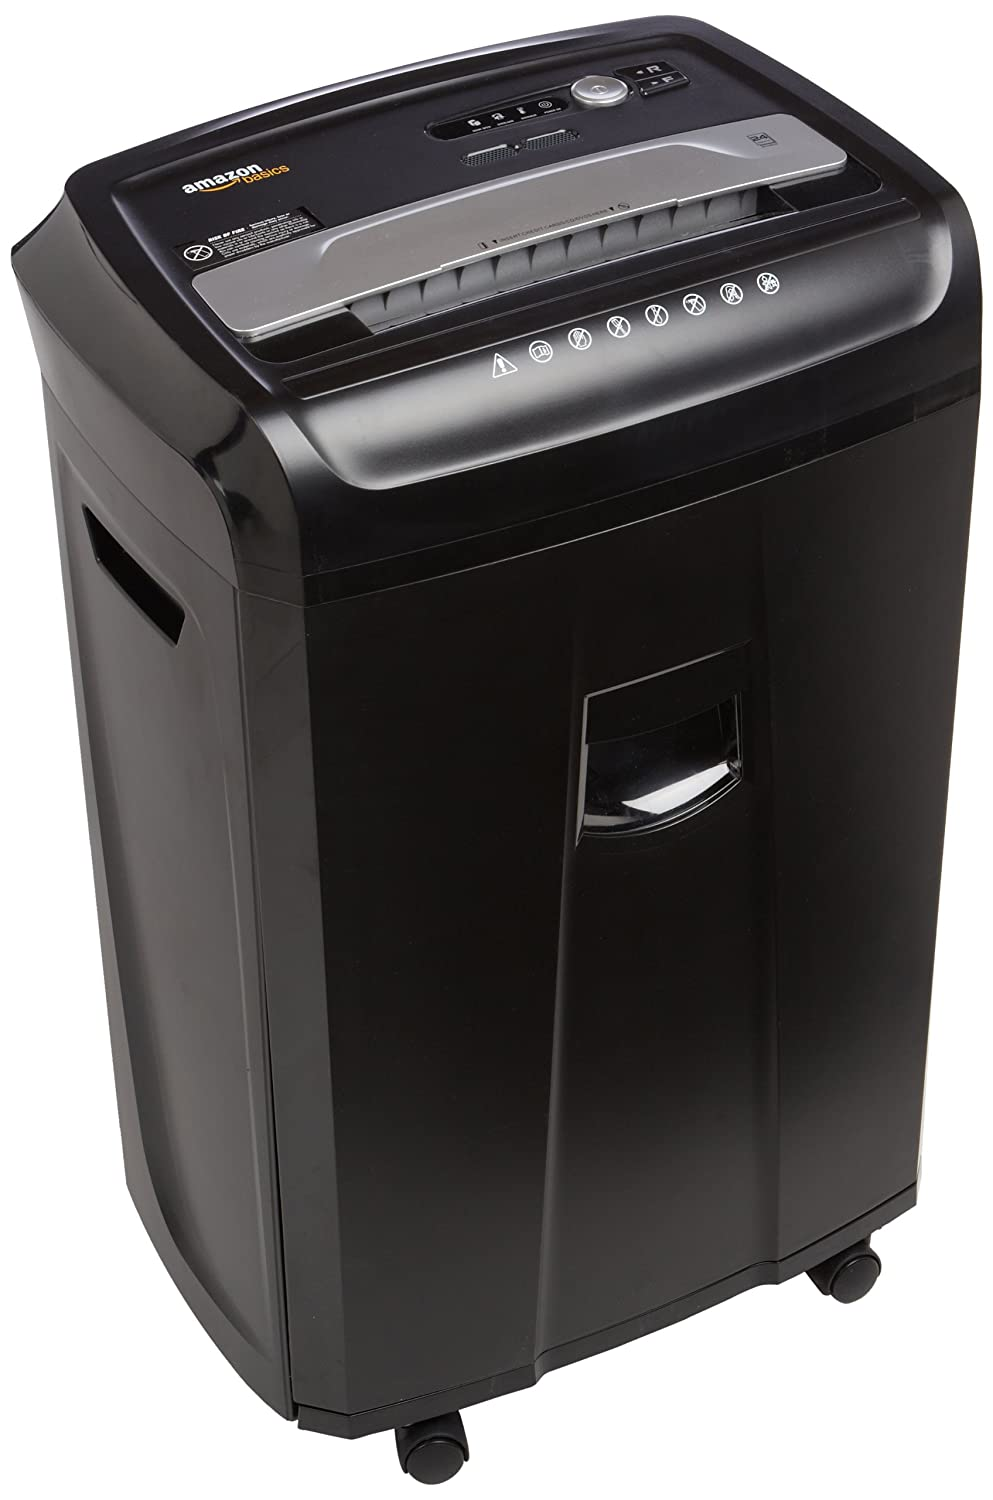 Amazon.com : AmazonBasics 24-Sheet Cross-Cut Paper, CD, and Credit Card  Shredder with Pullout Basket : Electronics